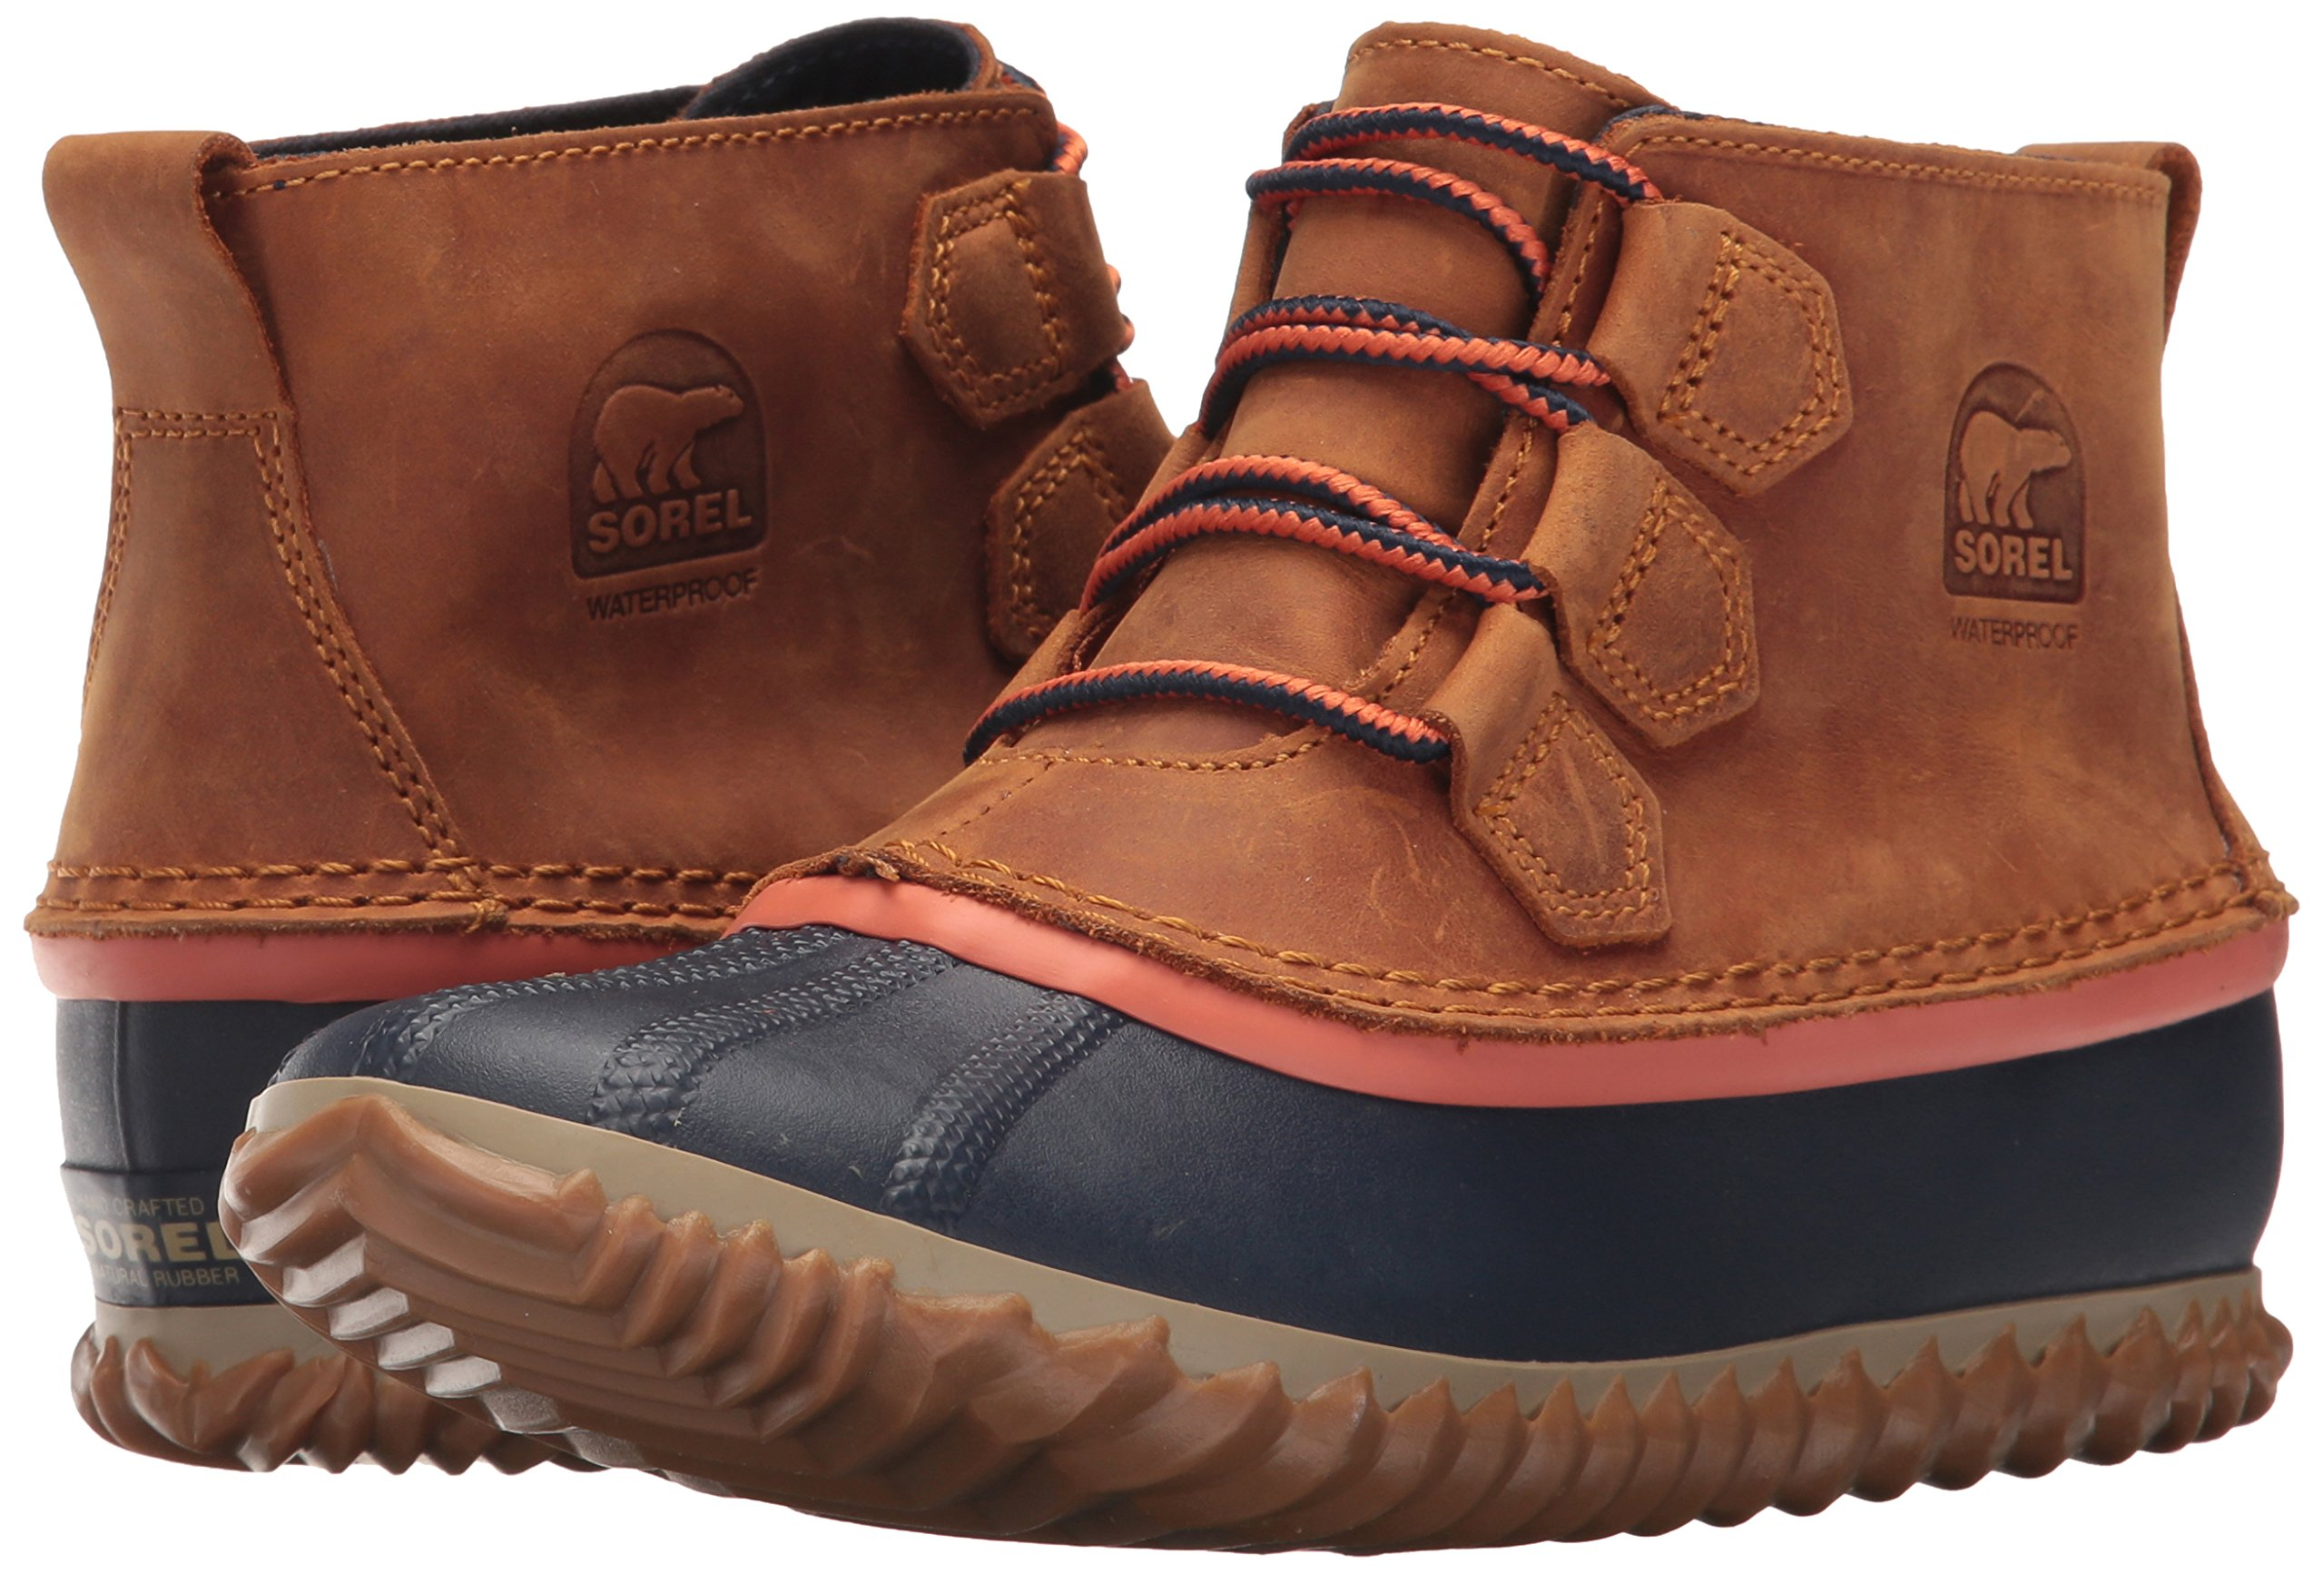 Sorel Women's Out N About Snow Boot, Brown, 6 B US by SOREL (Image #6)